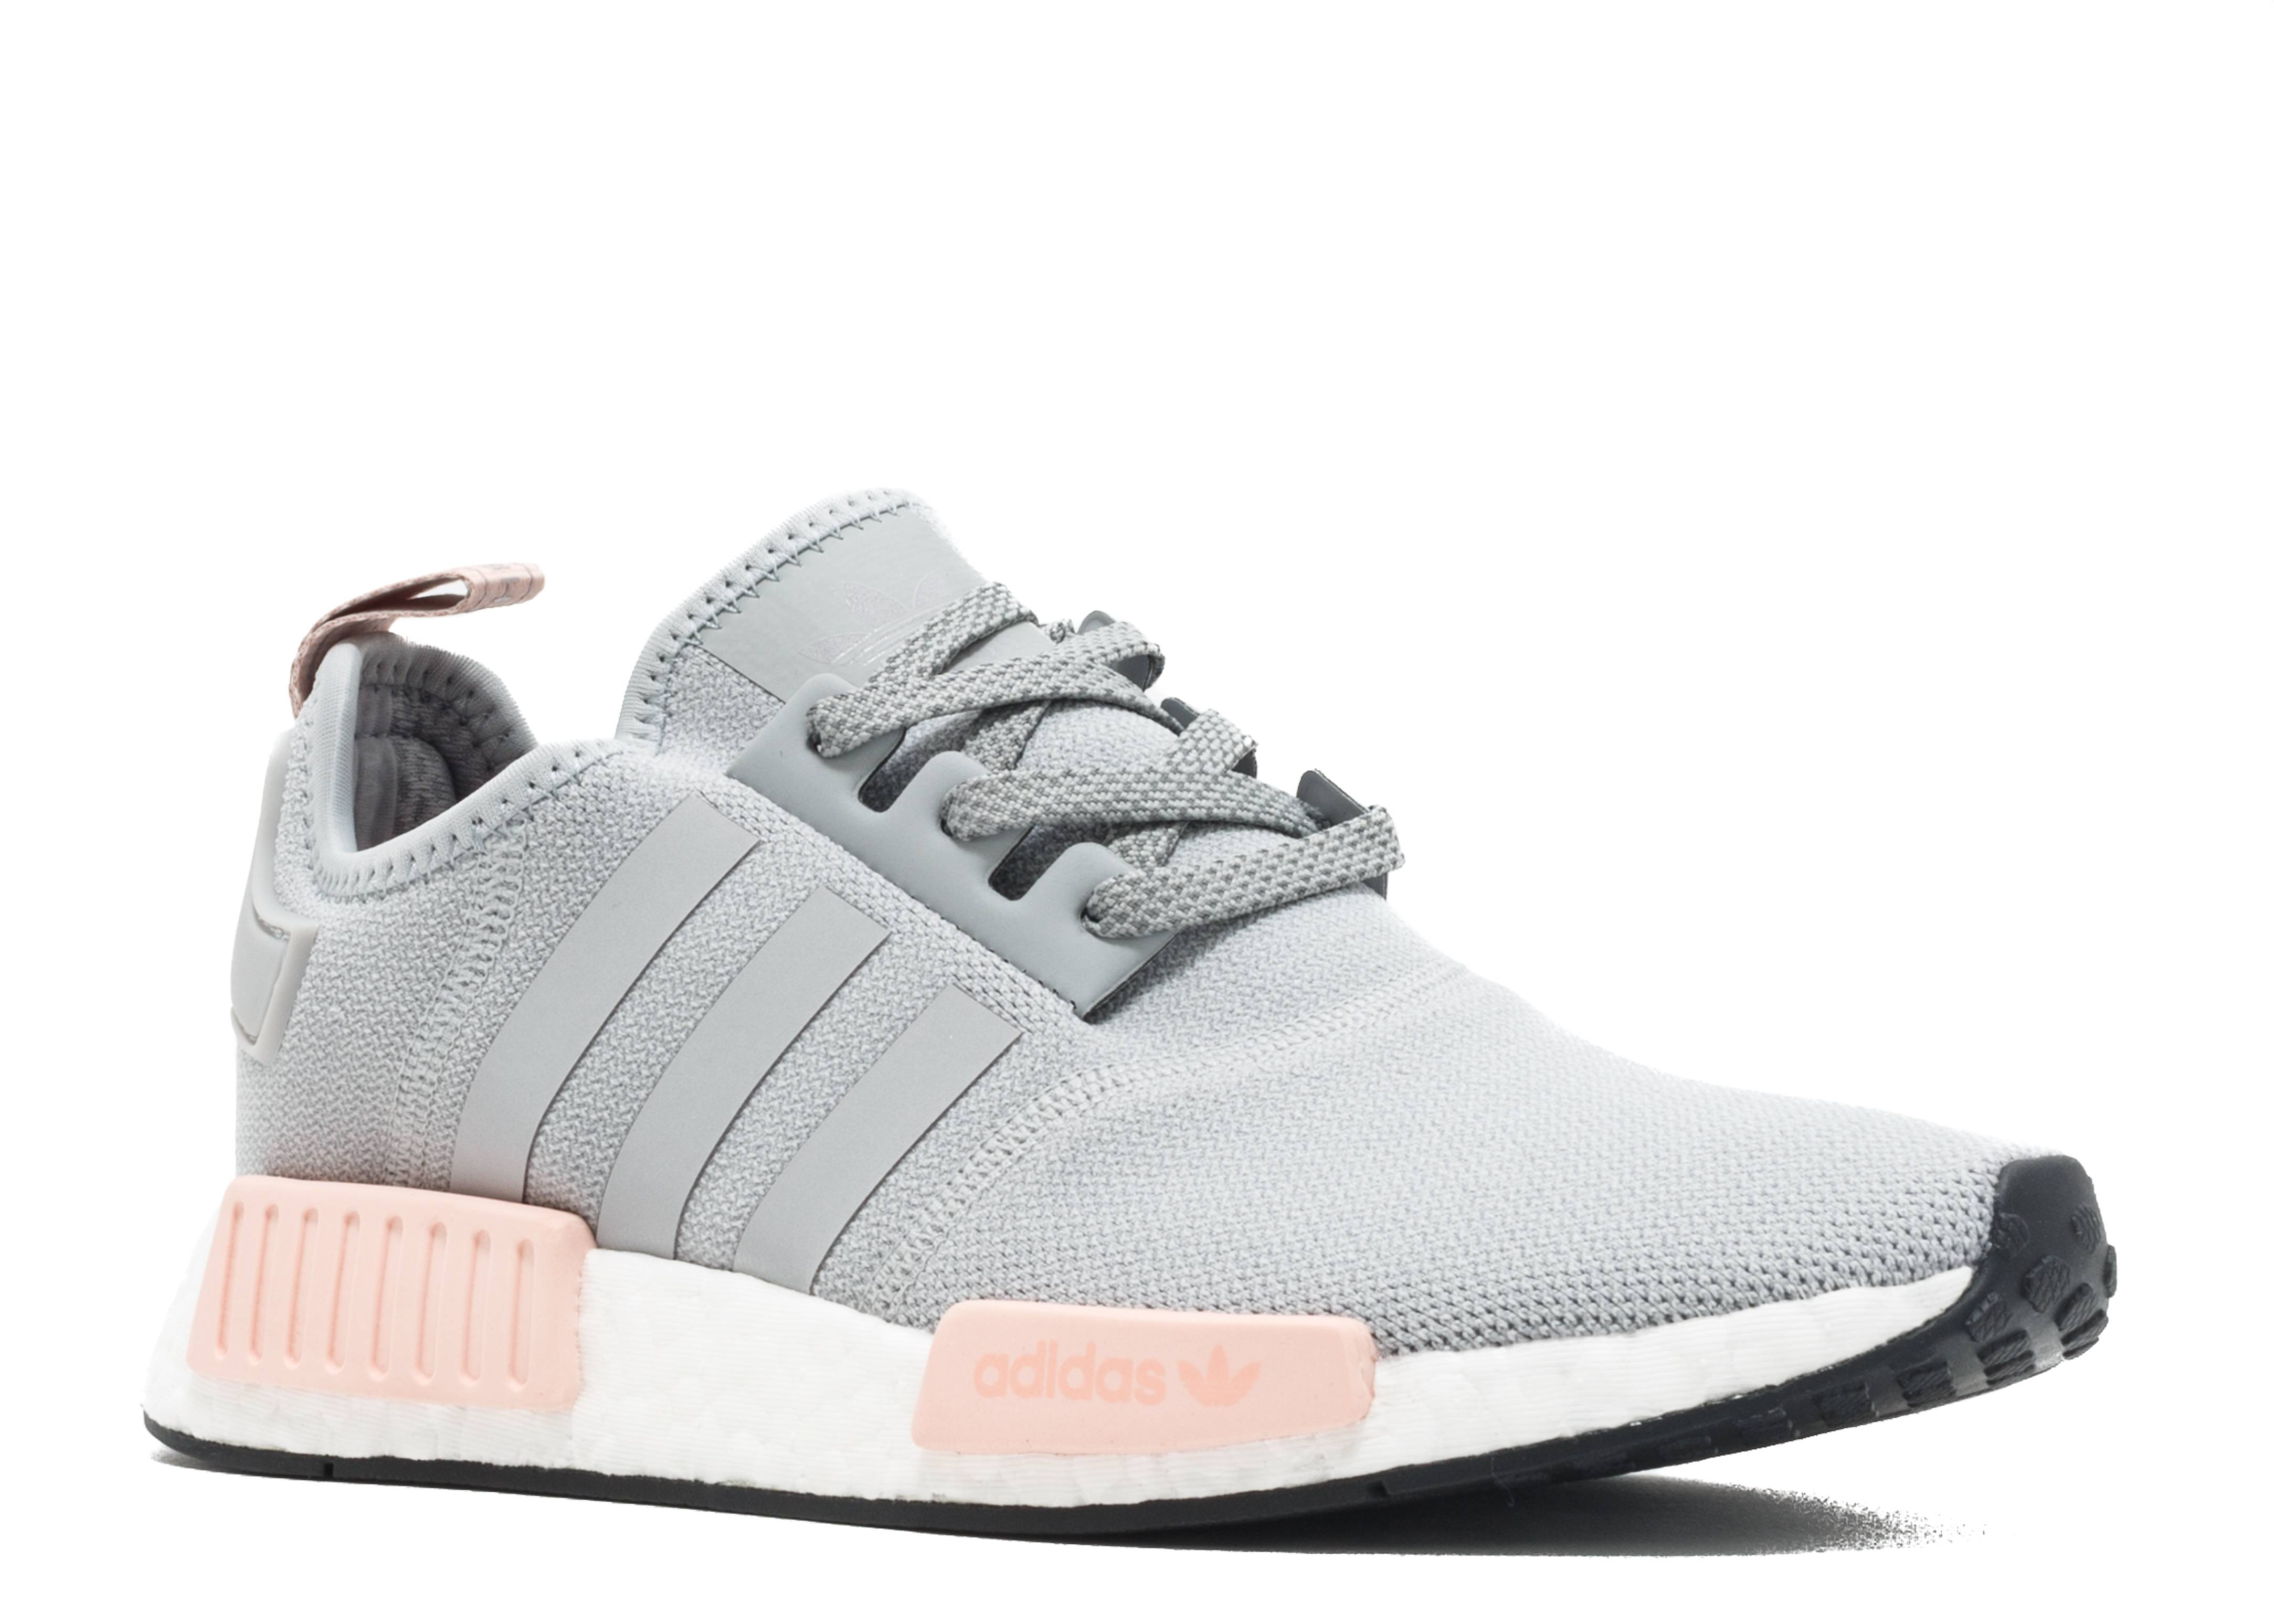 Nmd R1 W Clear Onix Light Onix Vapour Pink Nmd